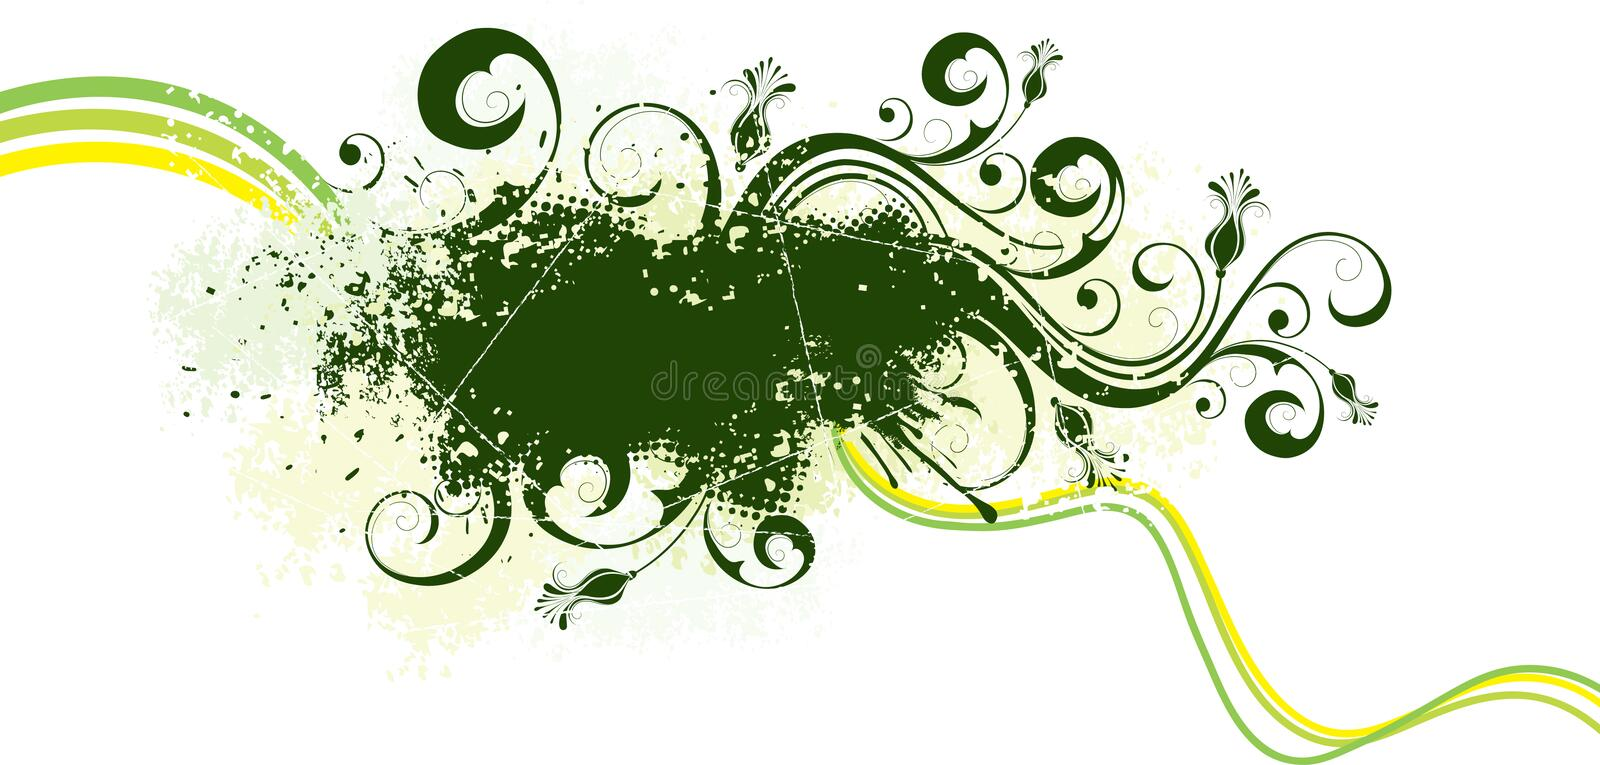 Green grunge artwork. A border or graphic element in green with flourishes stock illustration